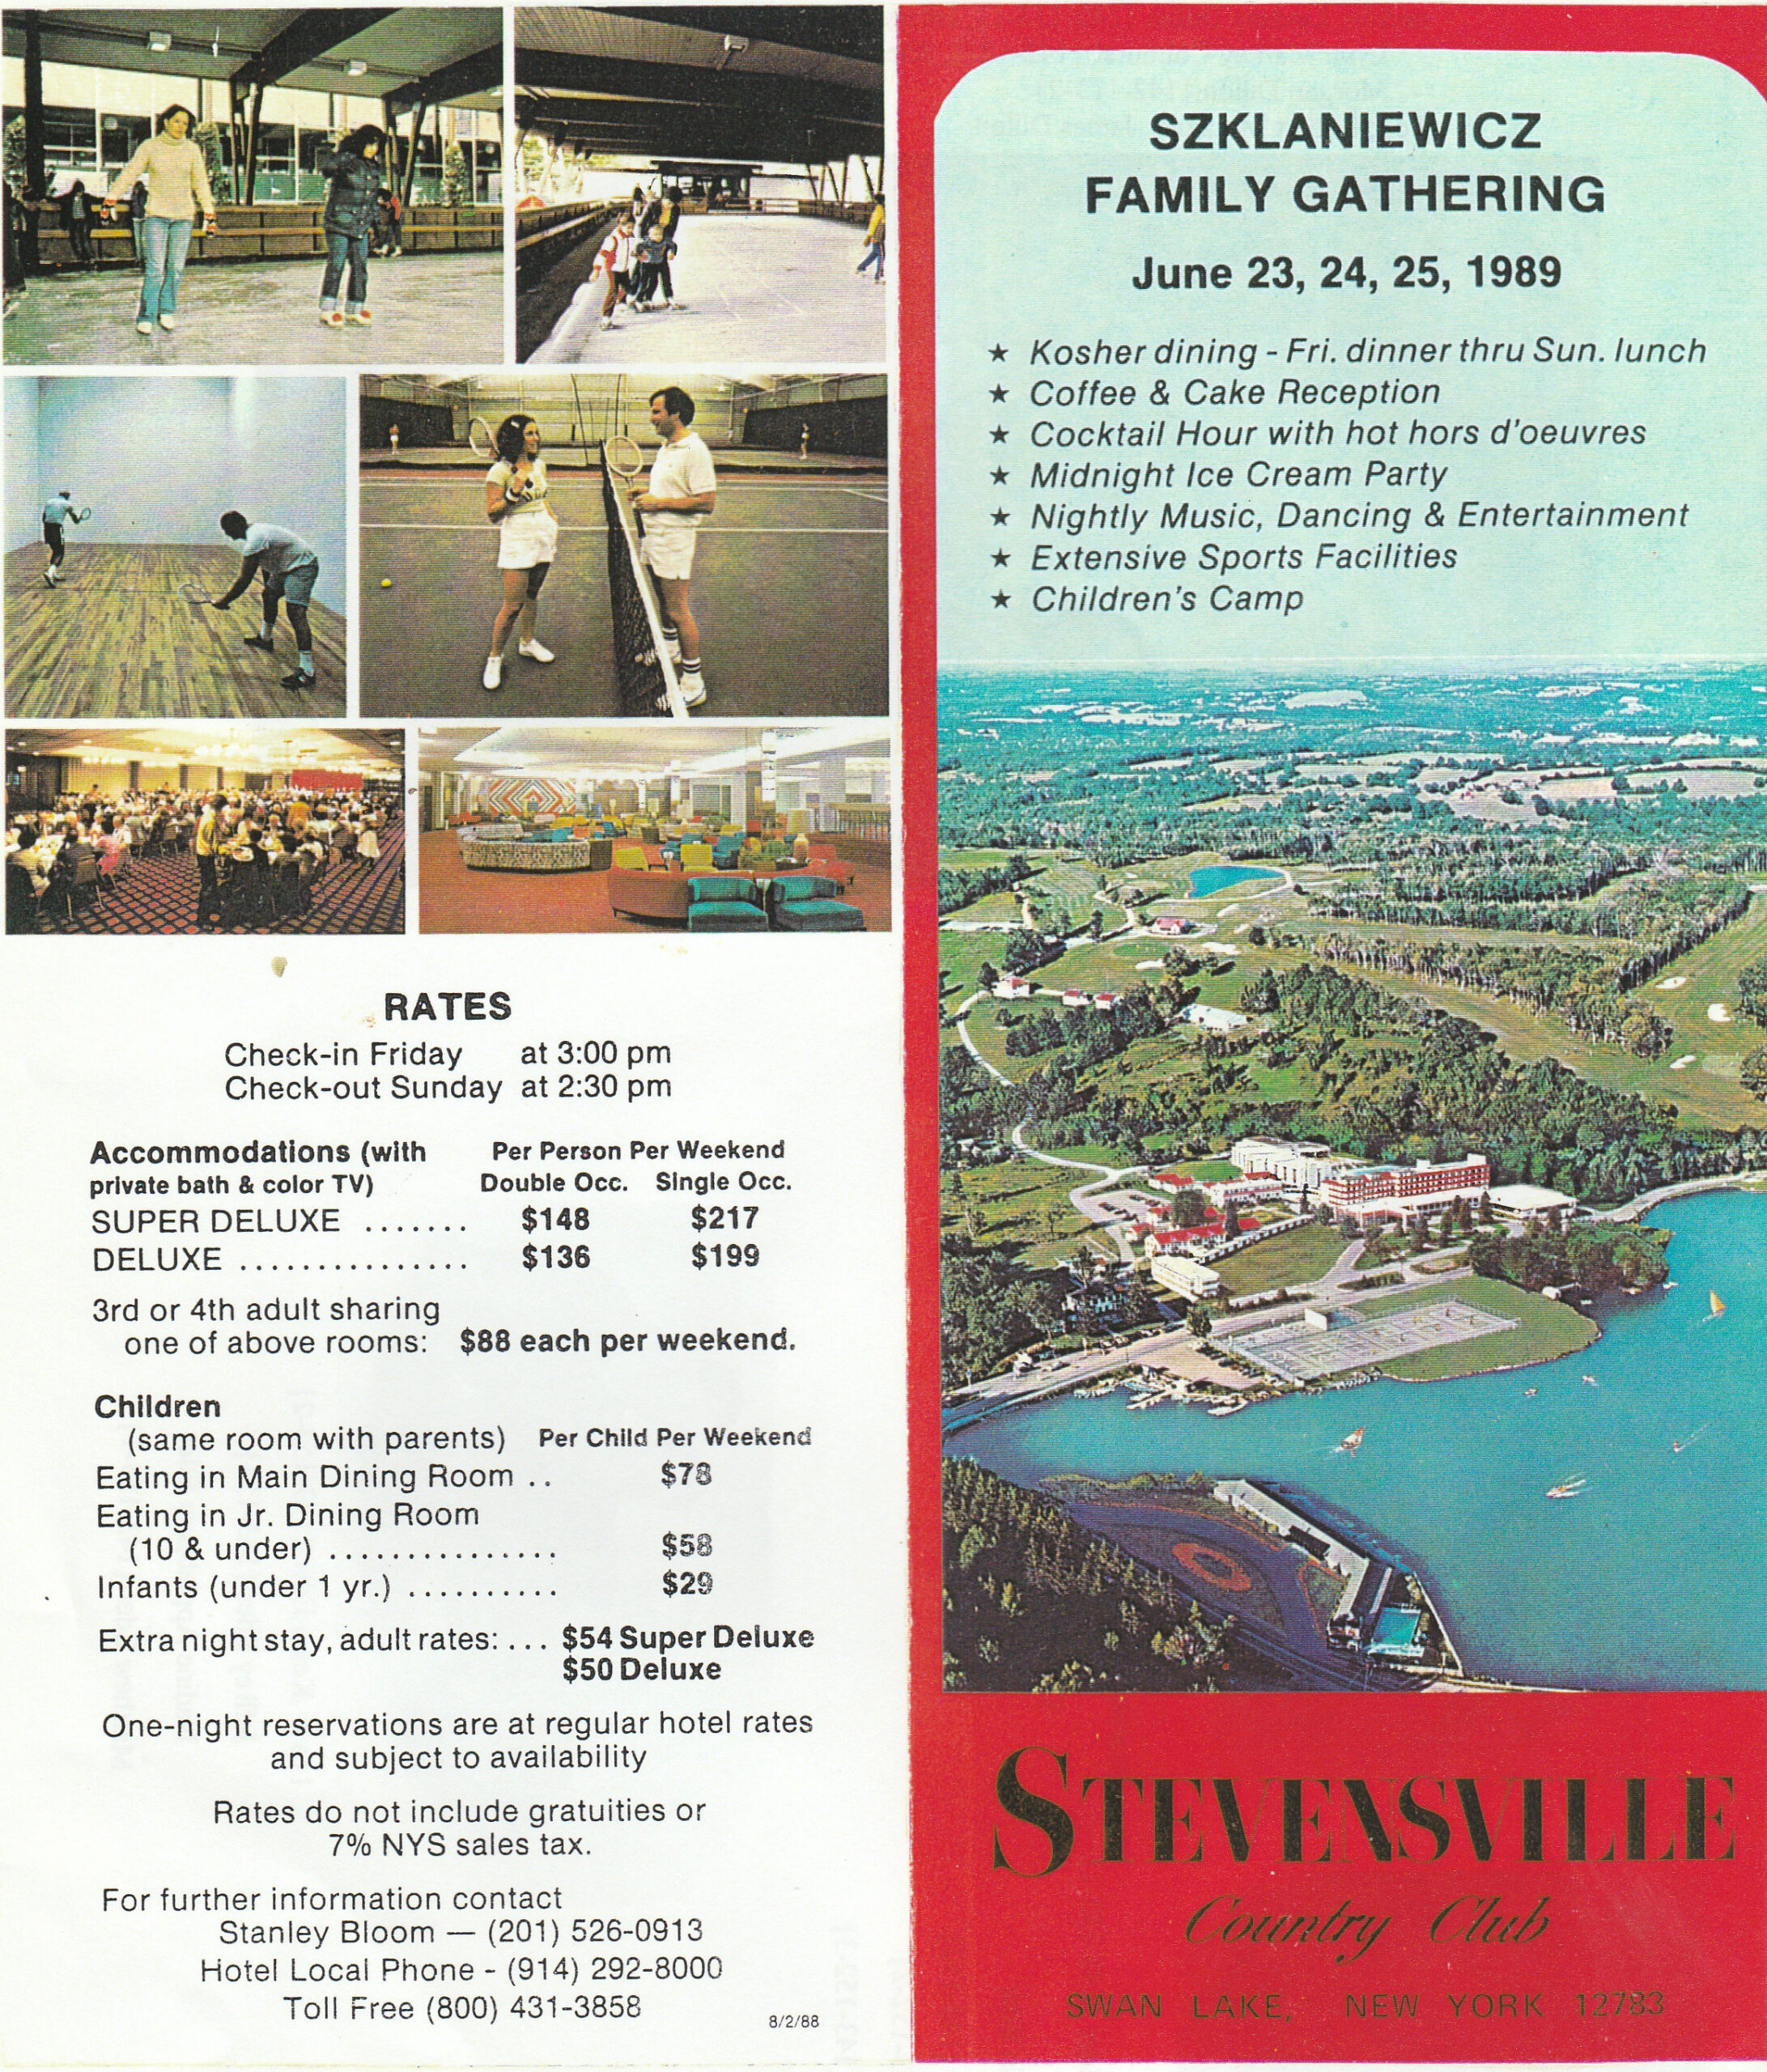 The Koslowitz Family Foundation was part of a larger family group called the Szklaniewicz family. In 1989 hundreds of members gathered in the Catskill Mountains for a weekend reunion. Here's a promotional poster from the hotel.